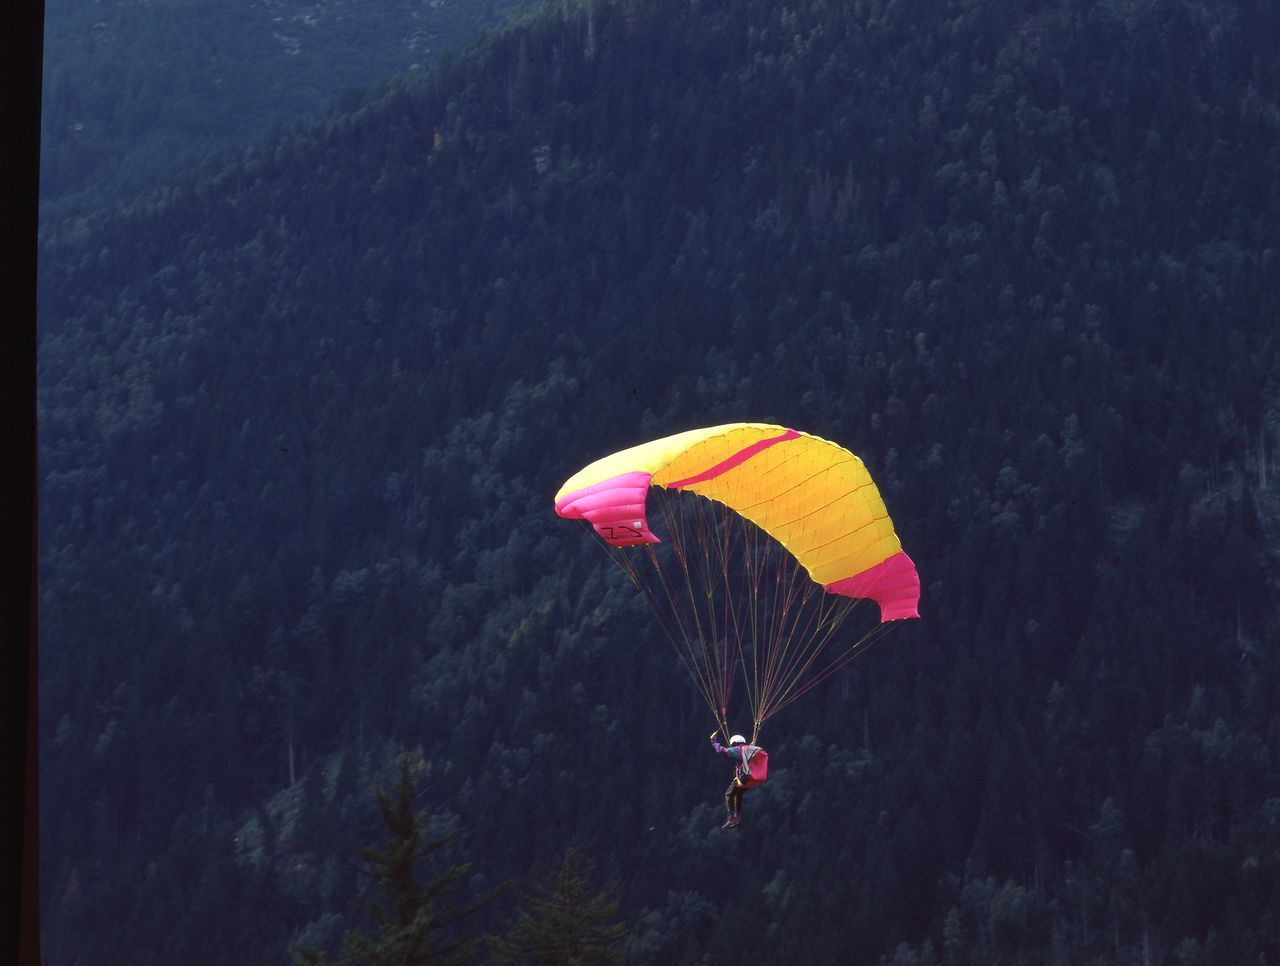 real people, one person, tree, parachute, leisure activity, extreme sports, lifestyles, day, men, adventure, mid-air, outdoors, yellow, nature, flying, paragliding, mountain, people